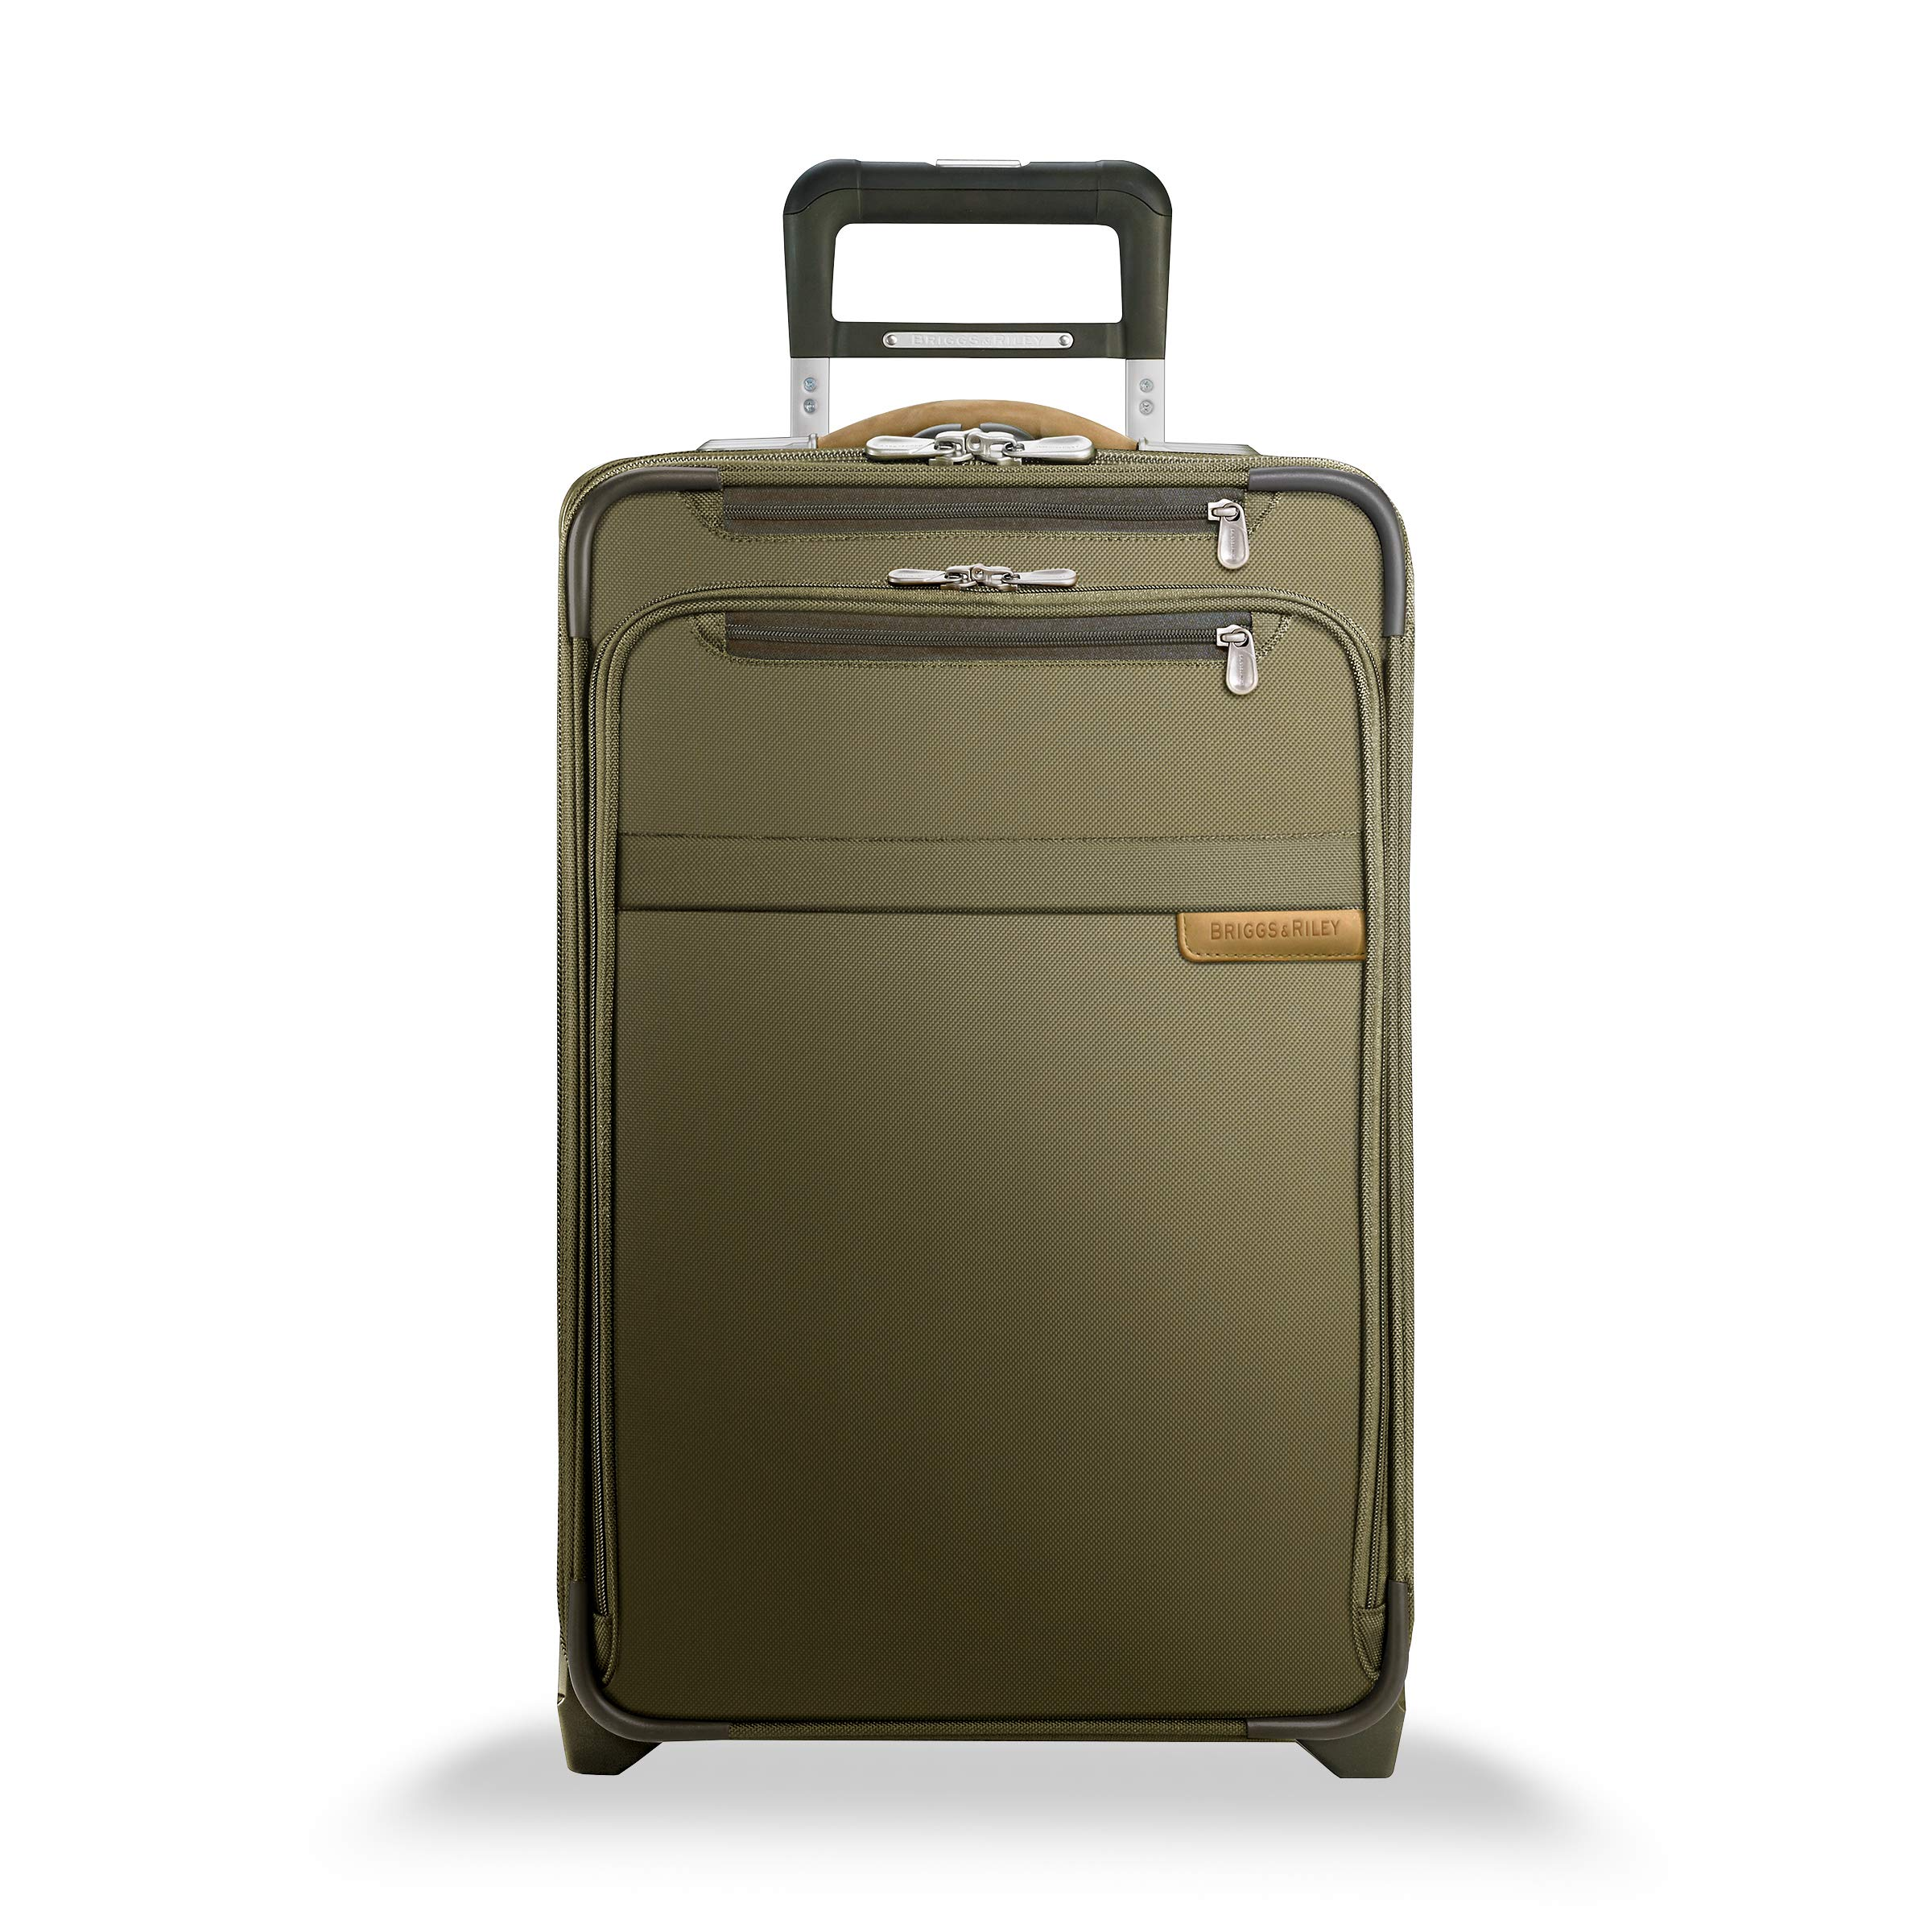 Briggs & Riley Baseline-Softside CX Expandable Carry-On Upright Luggage, Olive, 22-Inch